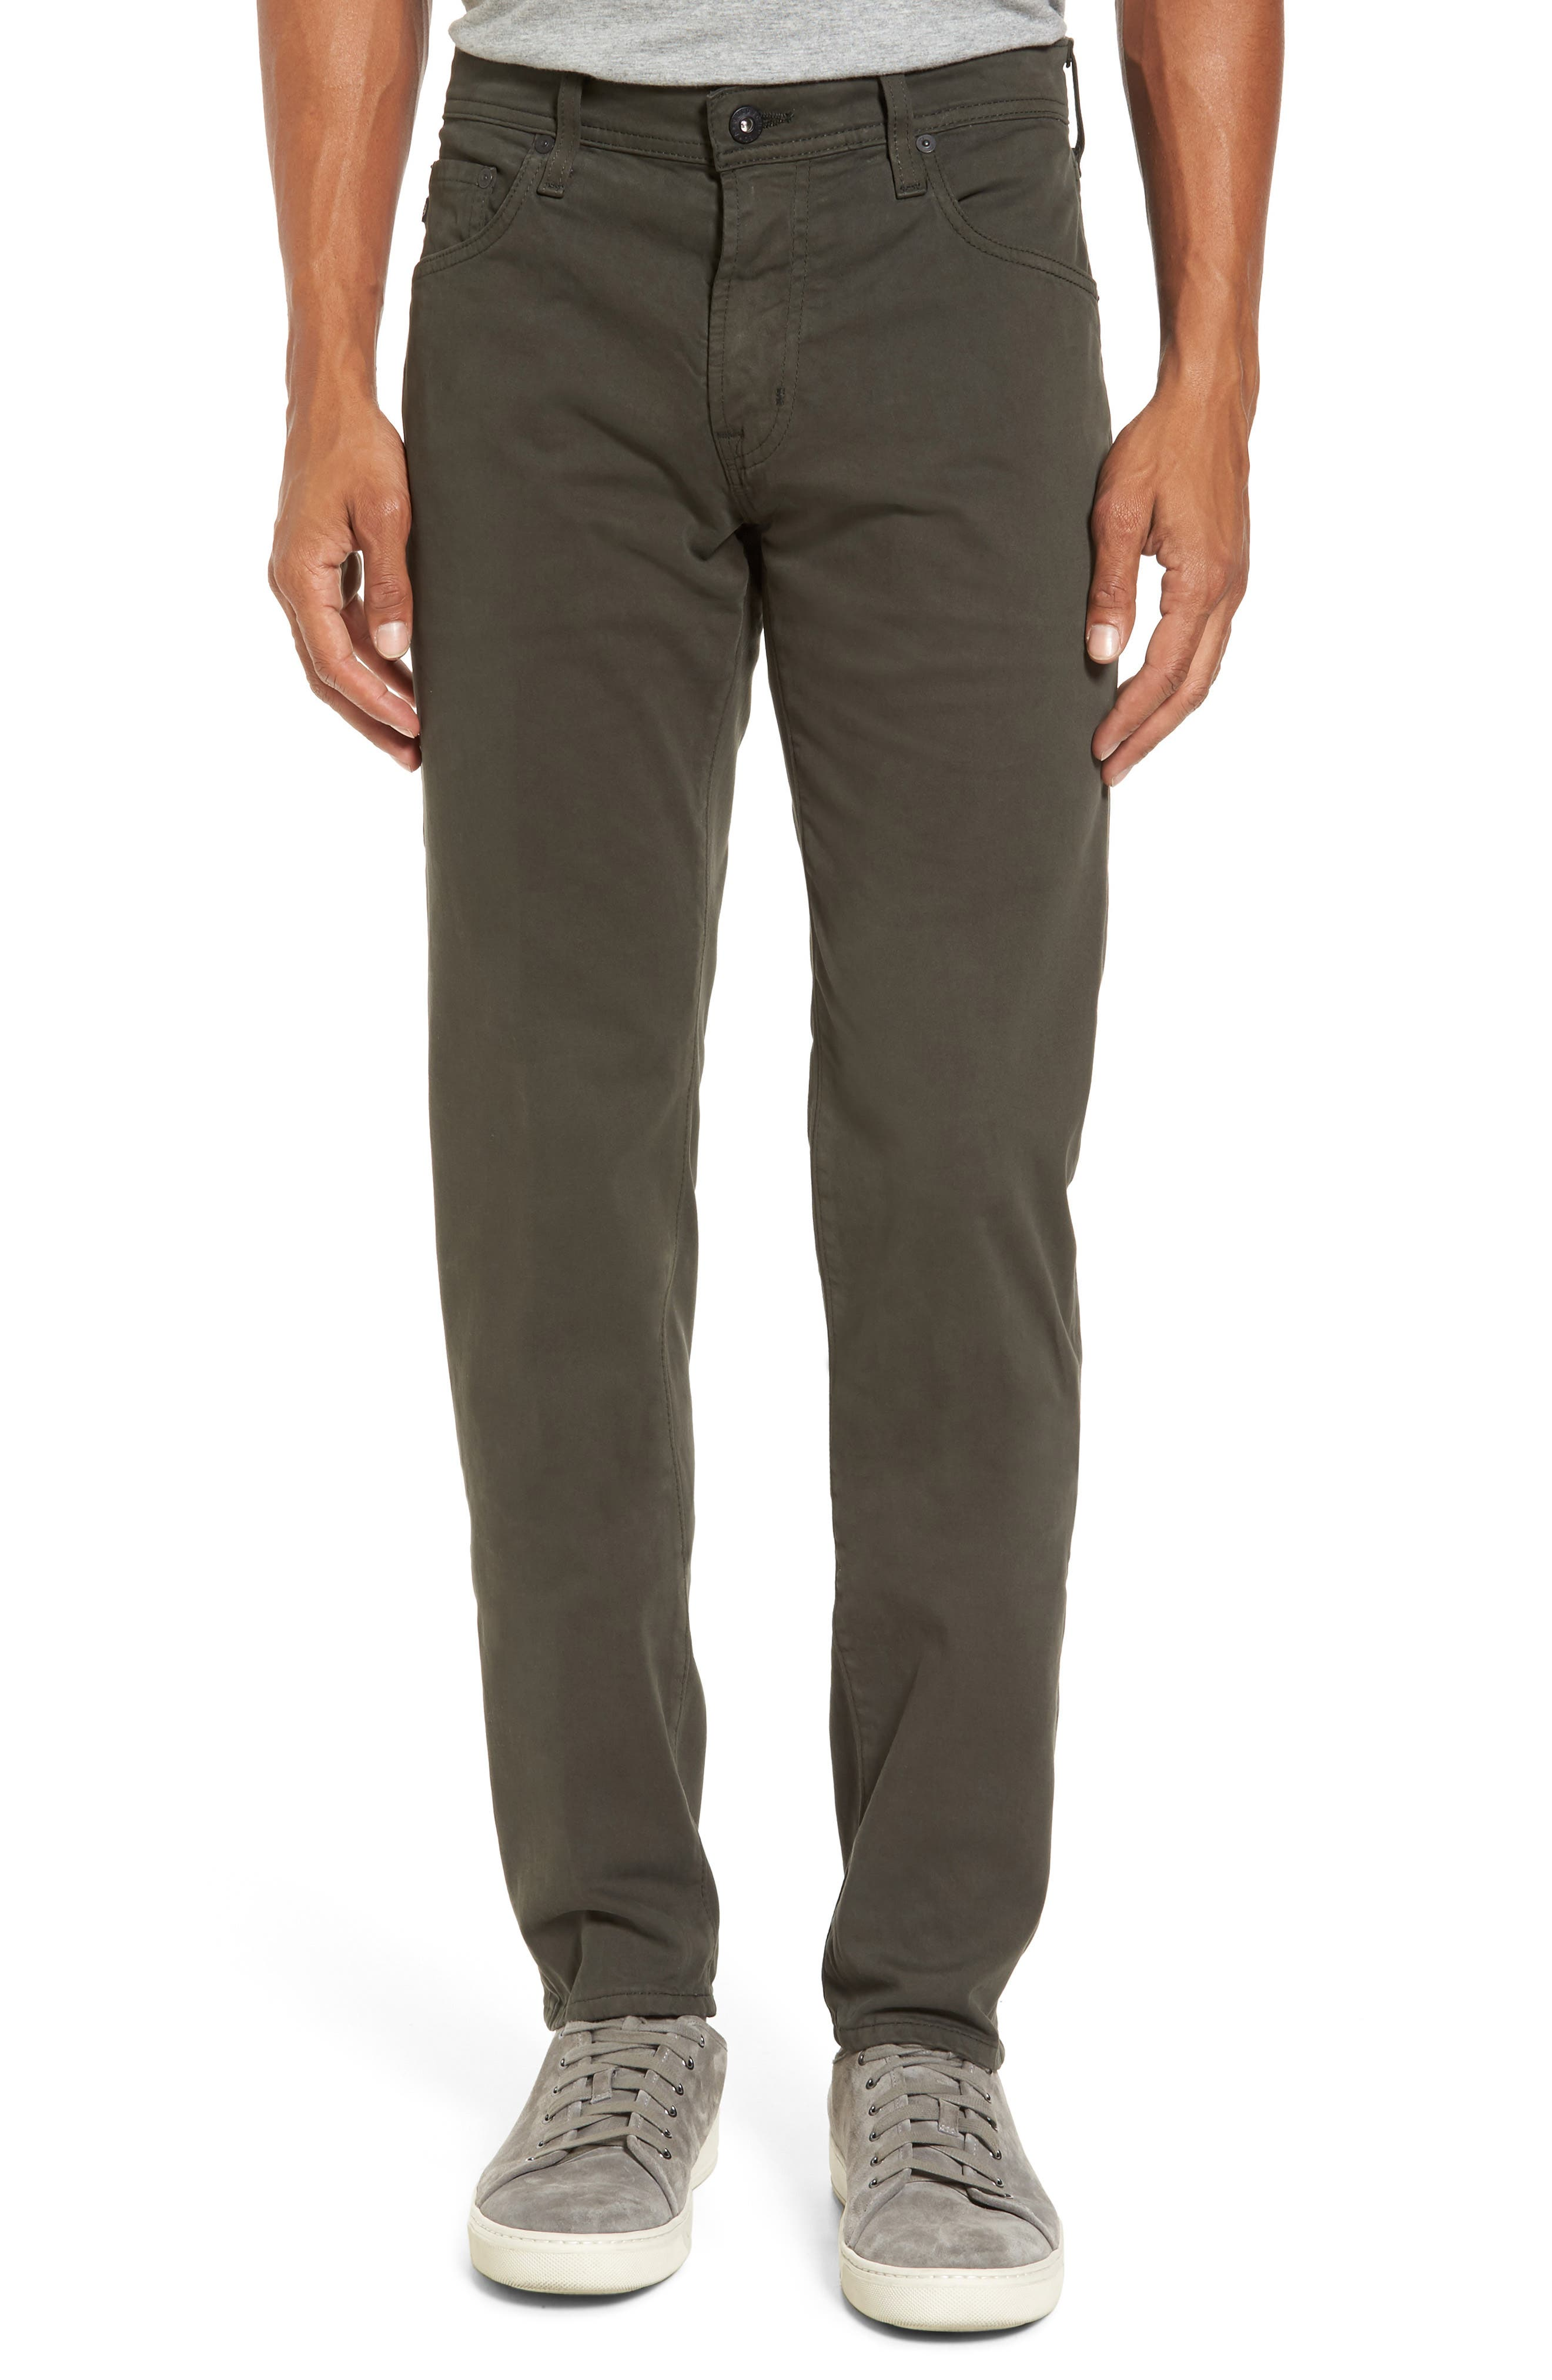 Tellis SUD Modern Slim Stretch Twill Pants,                             Main thumbnail 1, color,                             Green Forest